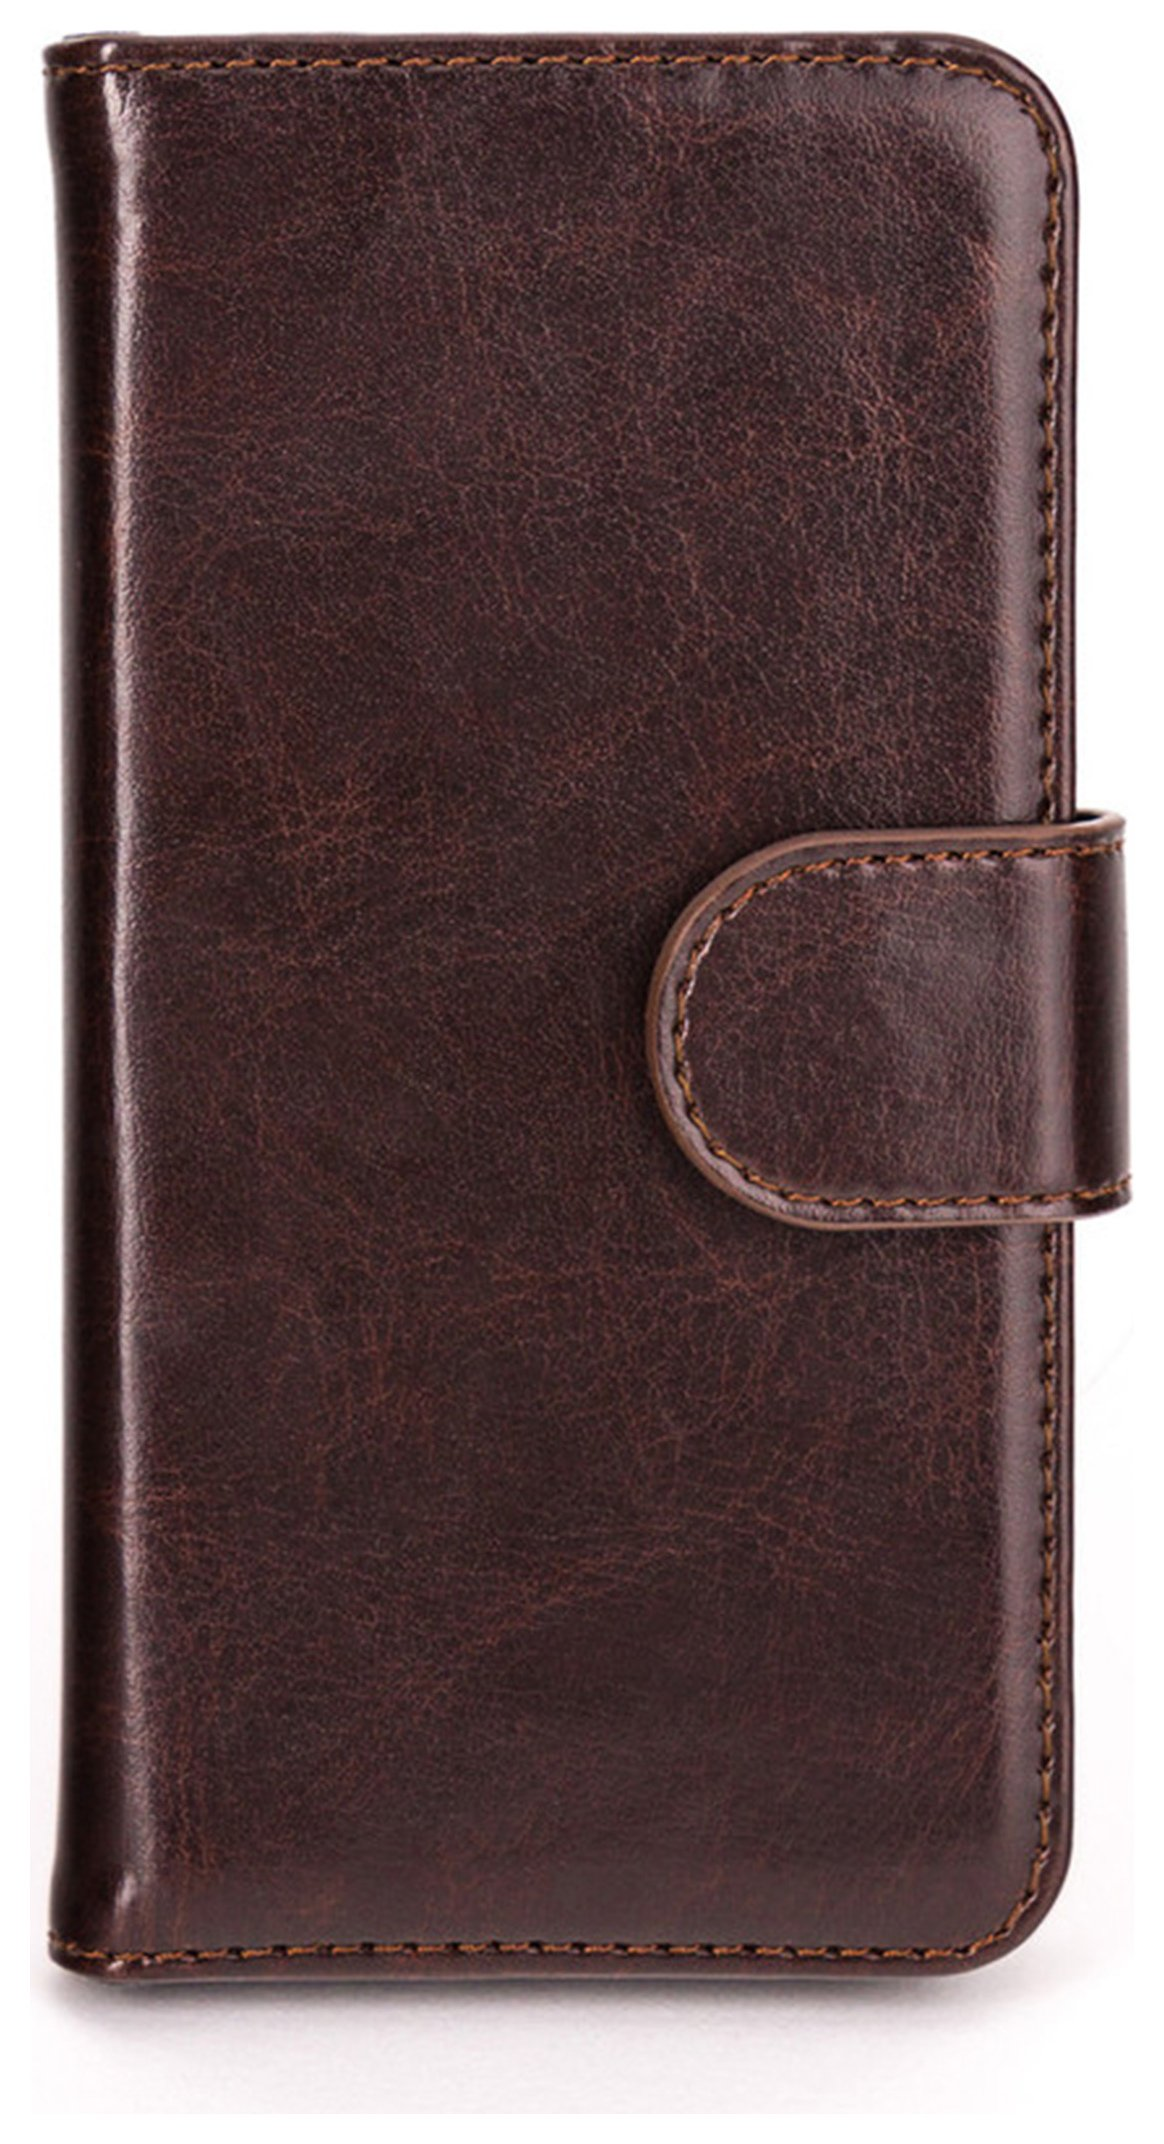 Xqisit Wallet Case Eman for iPhone 5S - Brown.